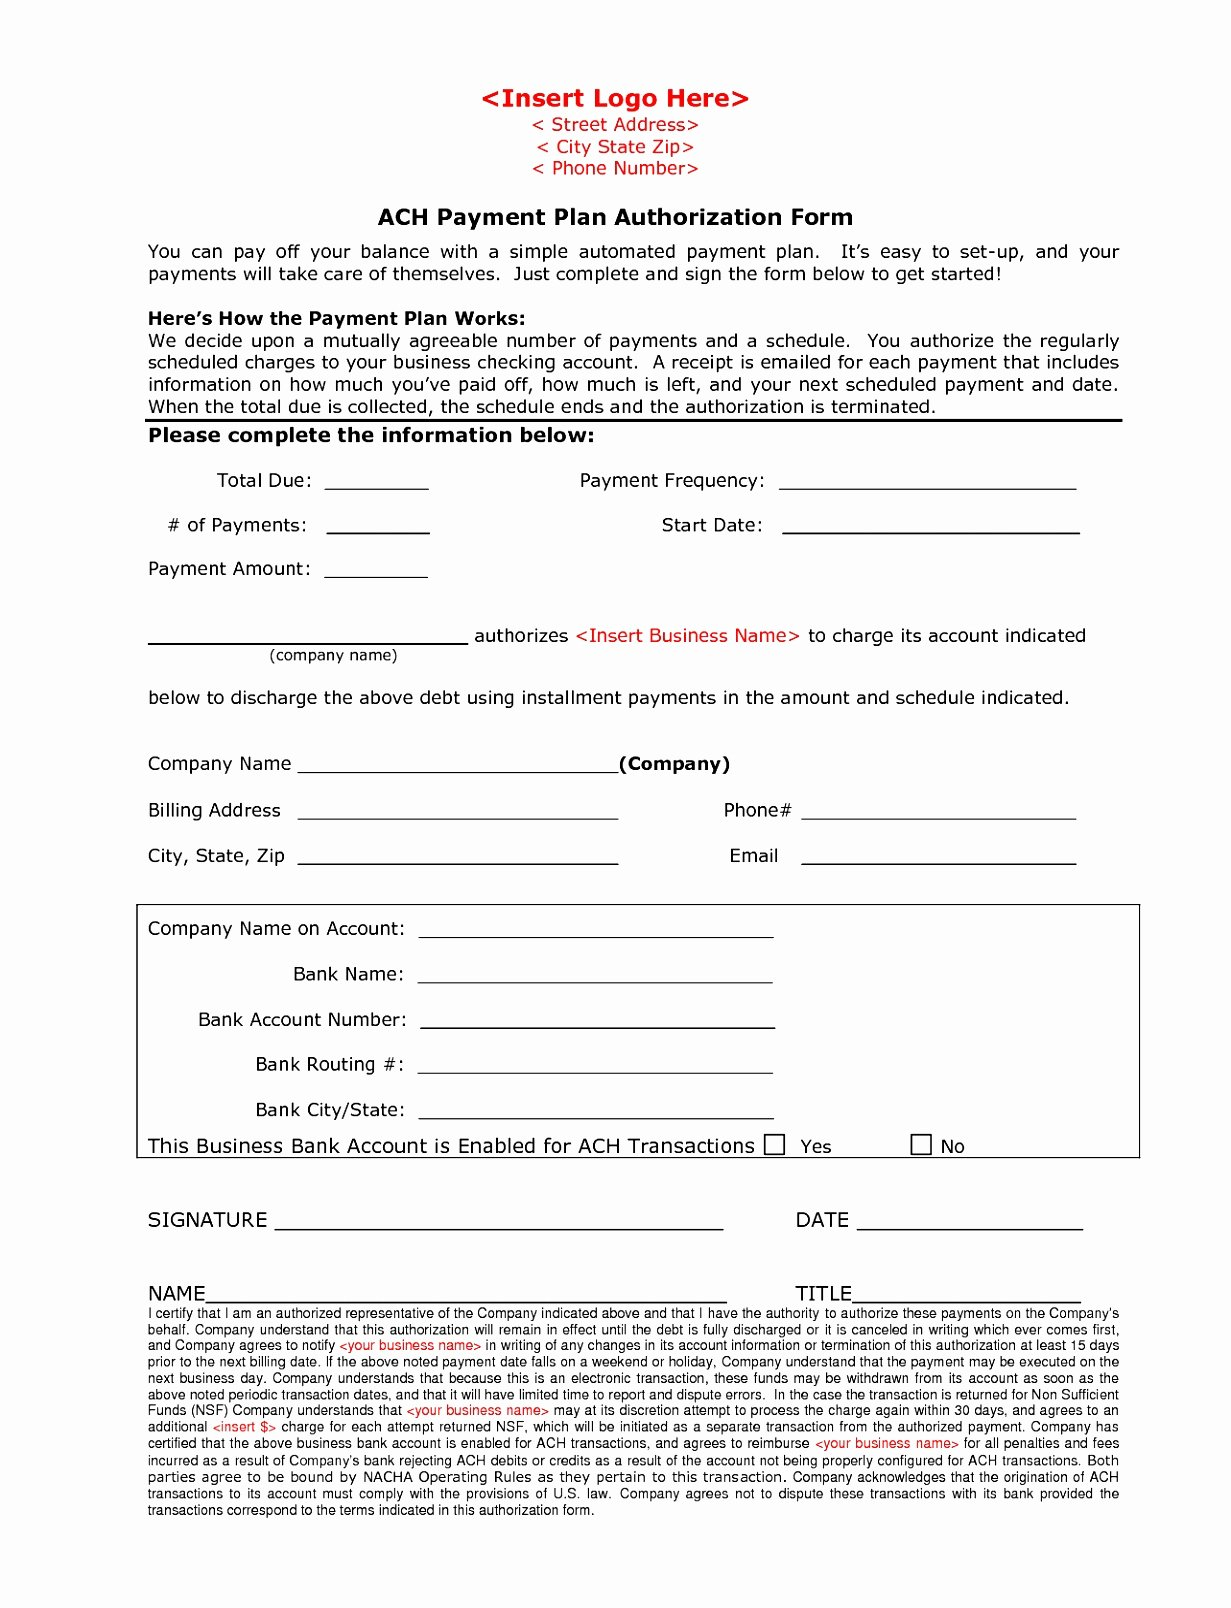 Ach Deposit Authorization form Template Best Of 12 Ach forms Templates Eaxah